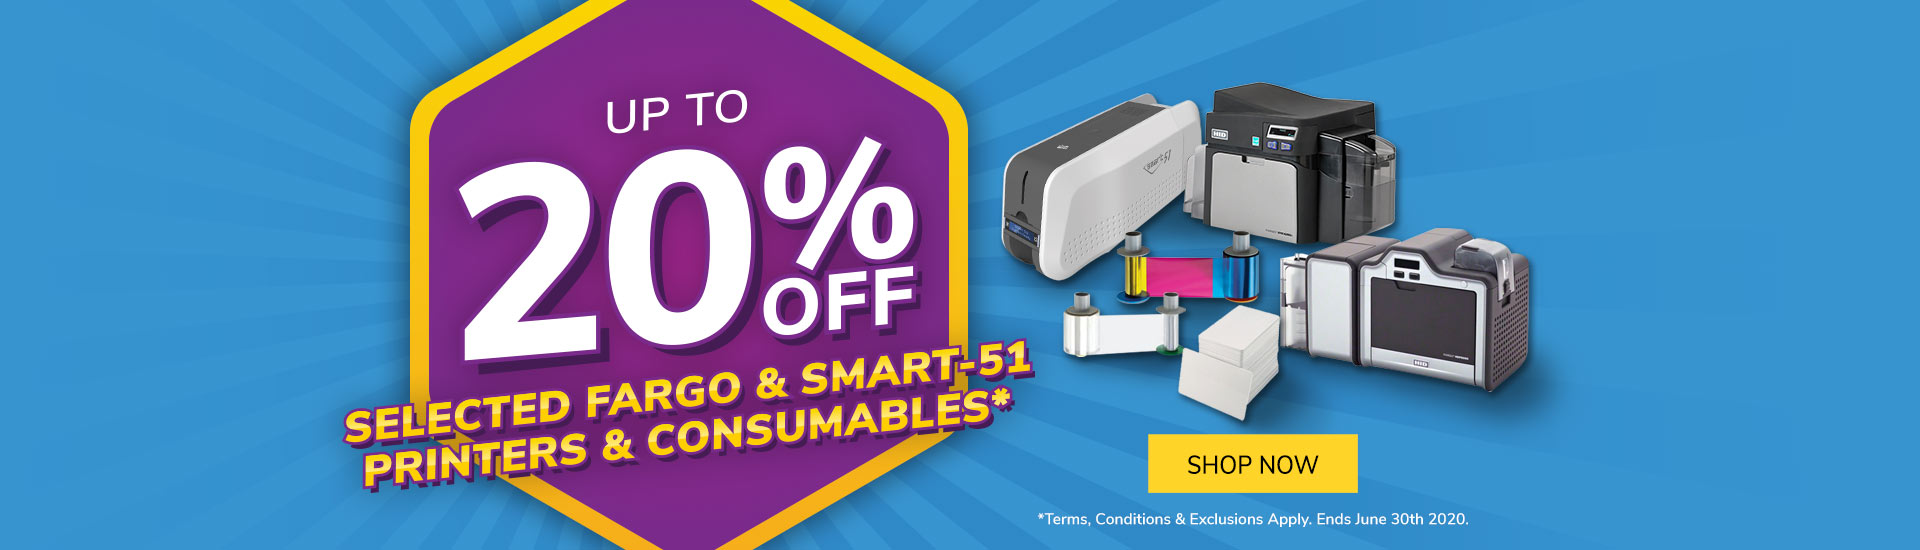 Printer and Print Consumables Promotion - ID Warehouse